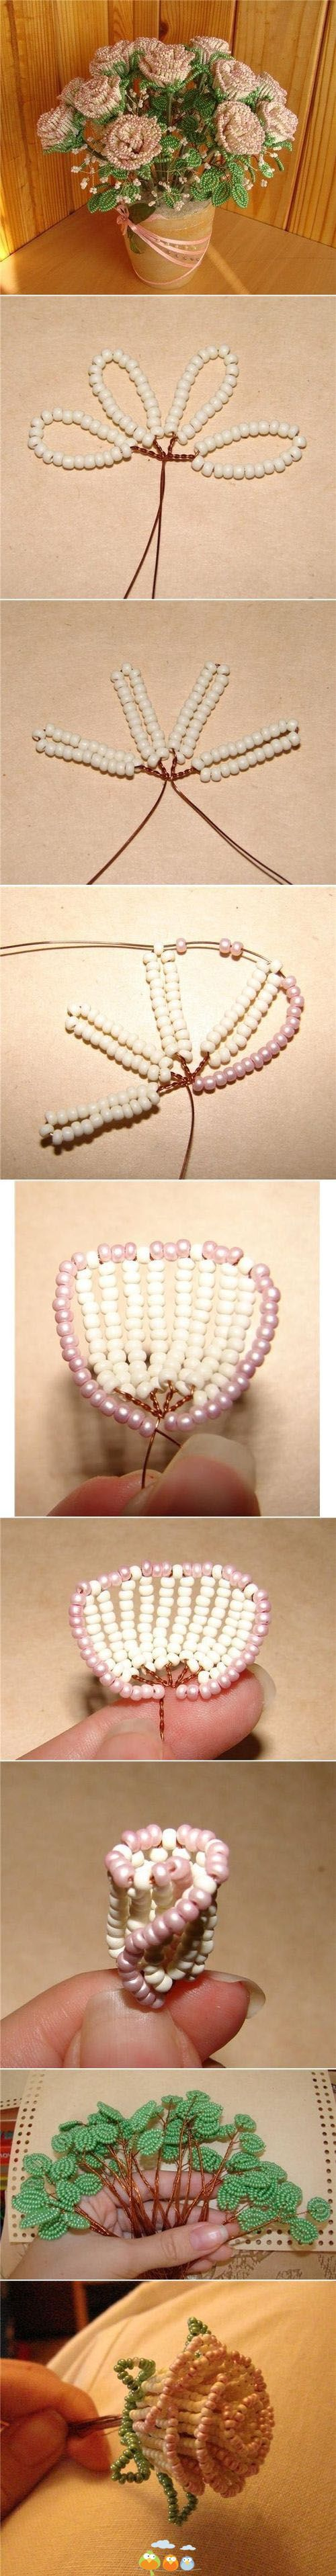 This technique is French Beading